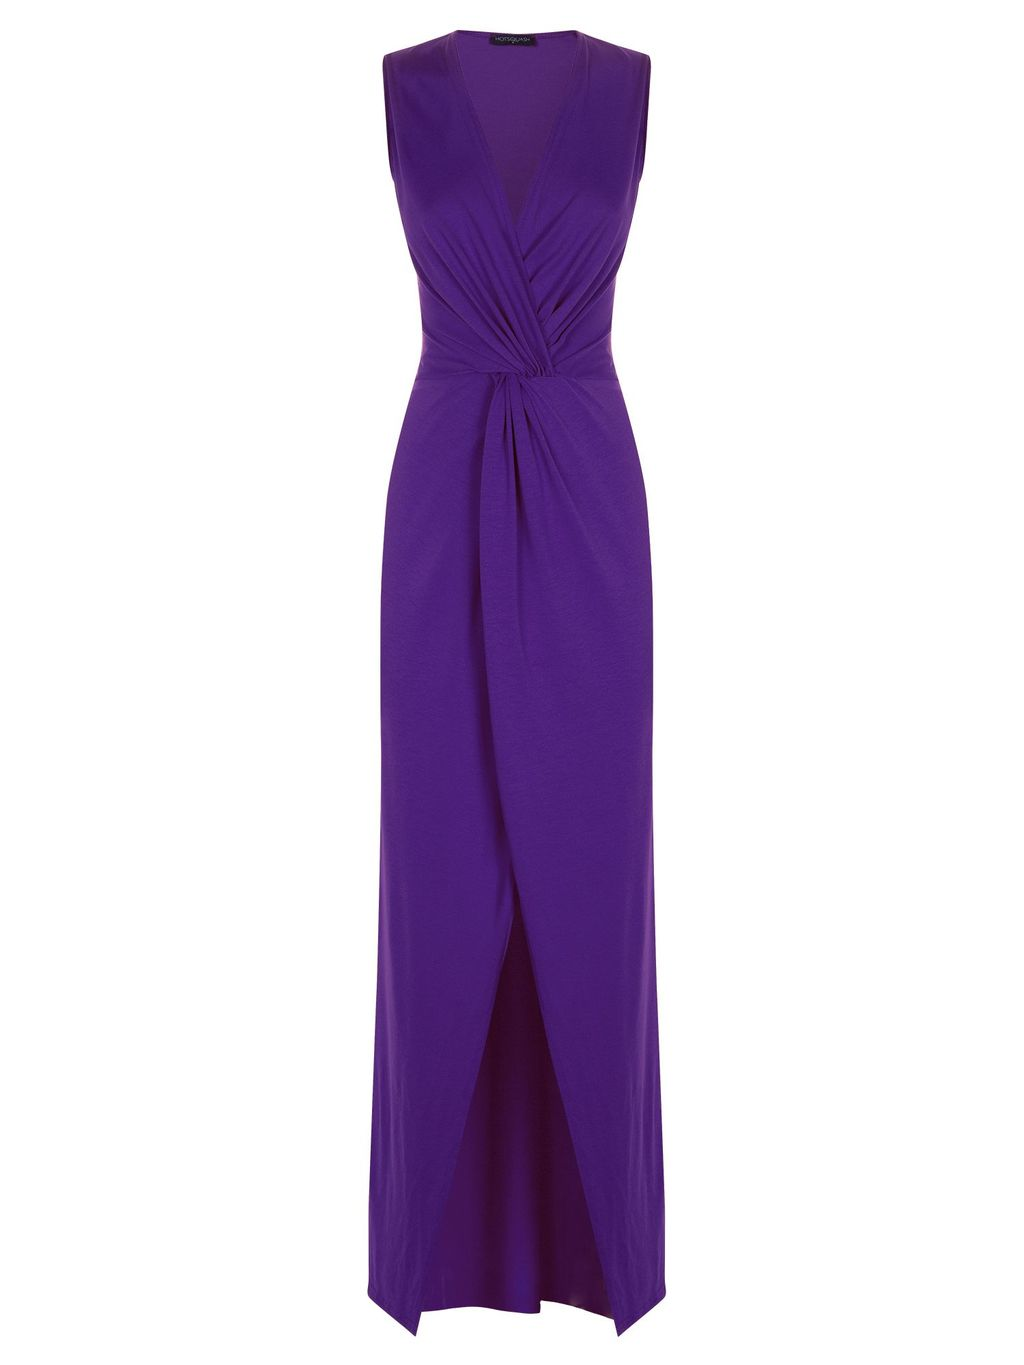 Long Elegant Maxi Dress With Knot Detail, Purple - style: faux wrap/wrap; neckline: low v-neck; pattern: plain; sleeve style: sleeveless; waist detail: twist front waist detail/nipped in at waist on one side/soft pleats/draping/ruching/gathering waist detail; predominant colour: purple; occasions: evening, occasion; length: floor length; fit: body skimming; fibres: polyester/polyamide - stretch; hip detail: slits at hip; sleeve length: sleeveless; pattern type: fabric; texture group: jersey - stretchy/drapey; season: s/s 2015; wardrobe: event